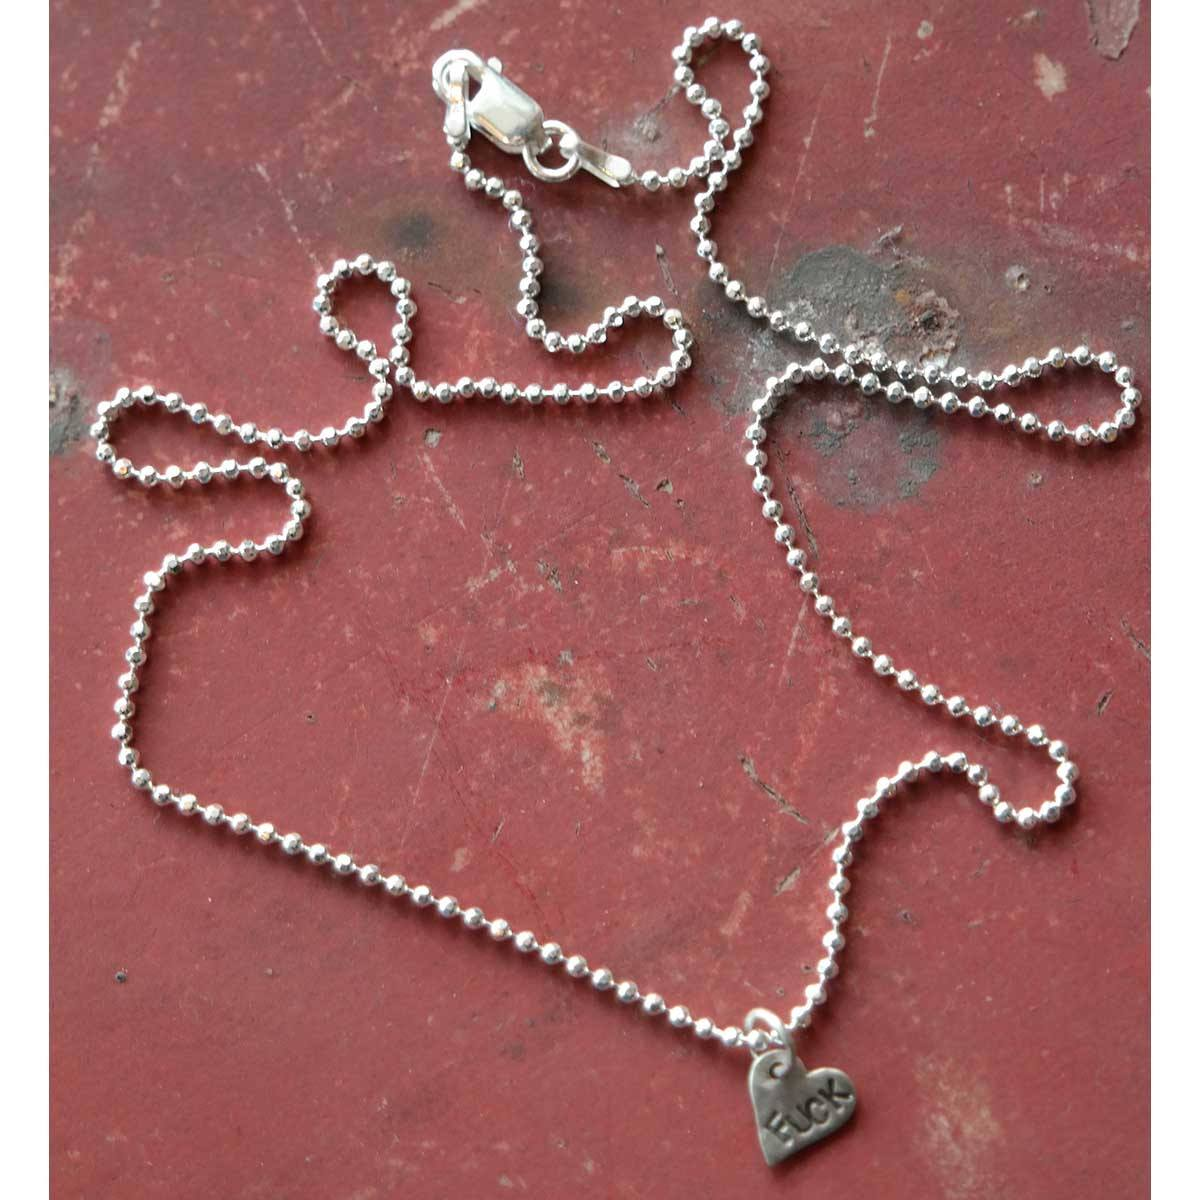 "Fuck - Angry Heart Tiny Silver Necklace - 16"" Chain - Margaret Sullivan - Yard Dog Art"